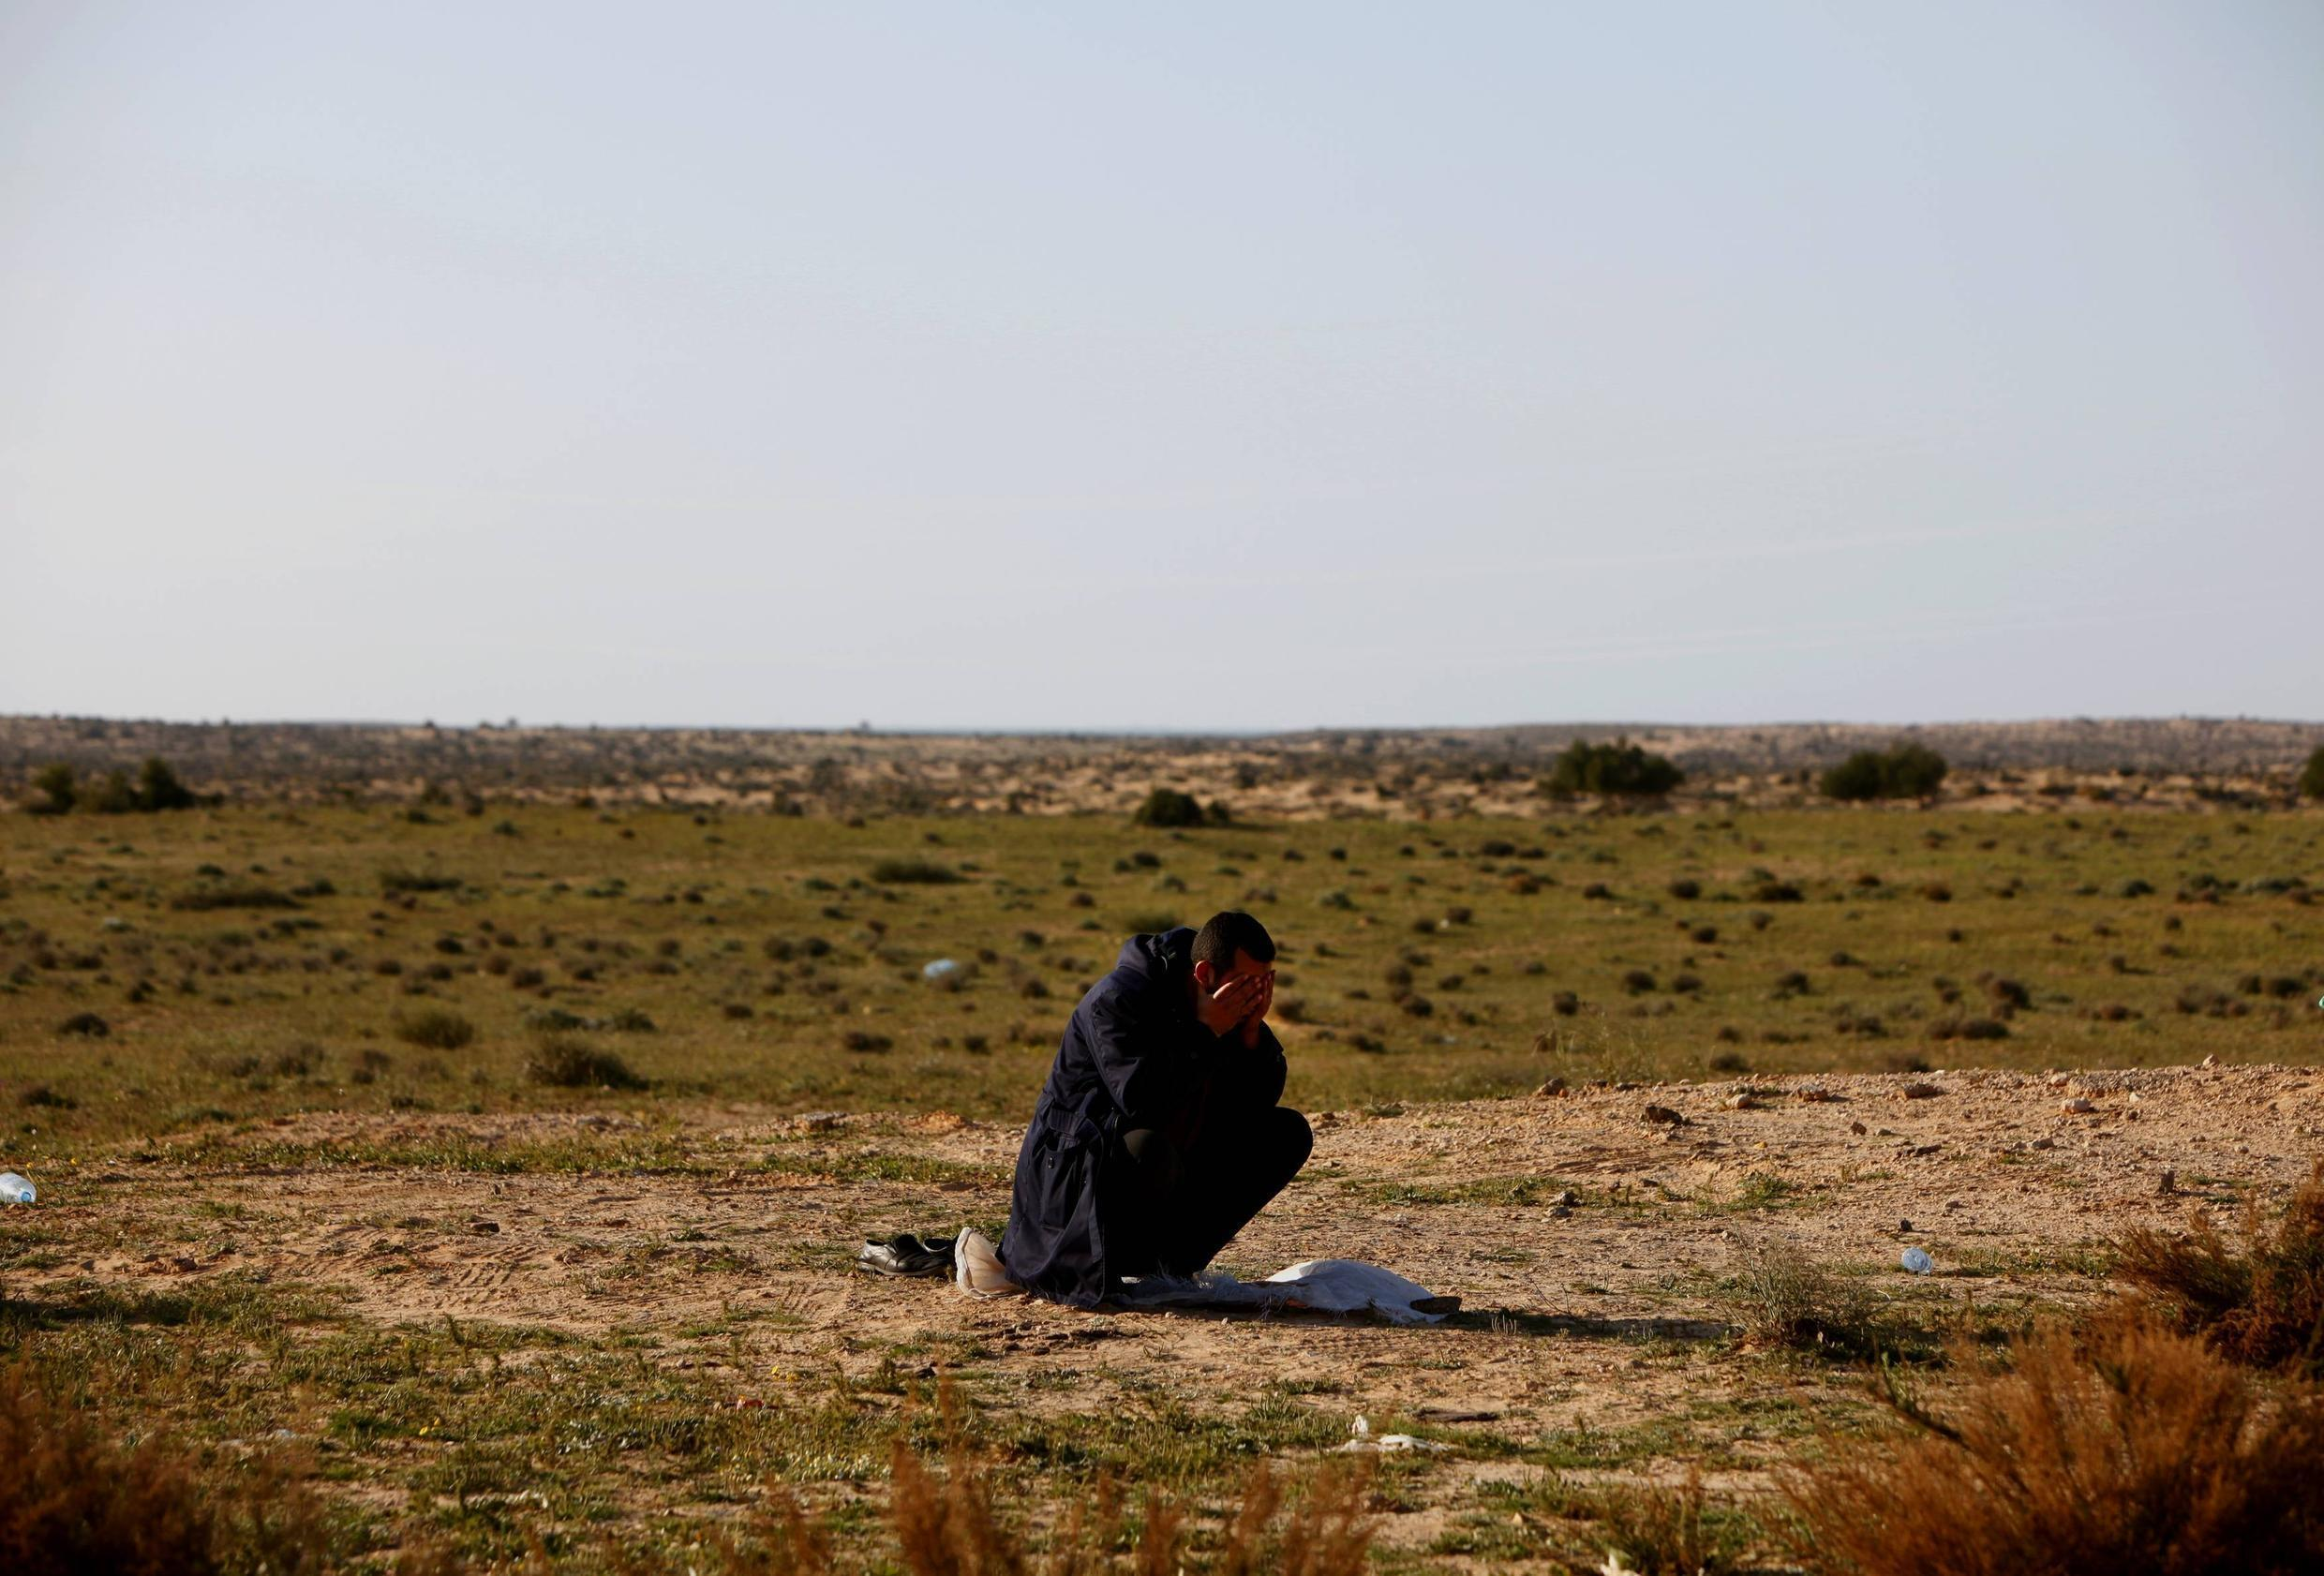 An Egyptian refugee prays shortly after crossing into Tunisian soil fleeing violence in Libya 25 February 2011